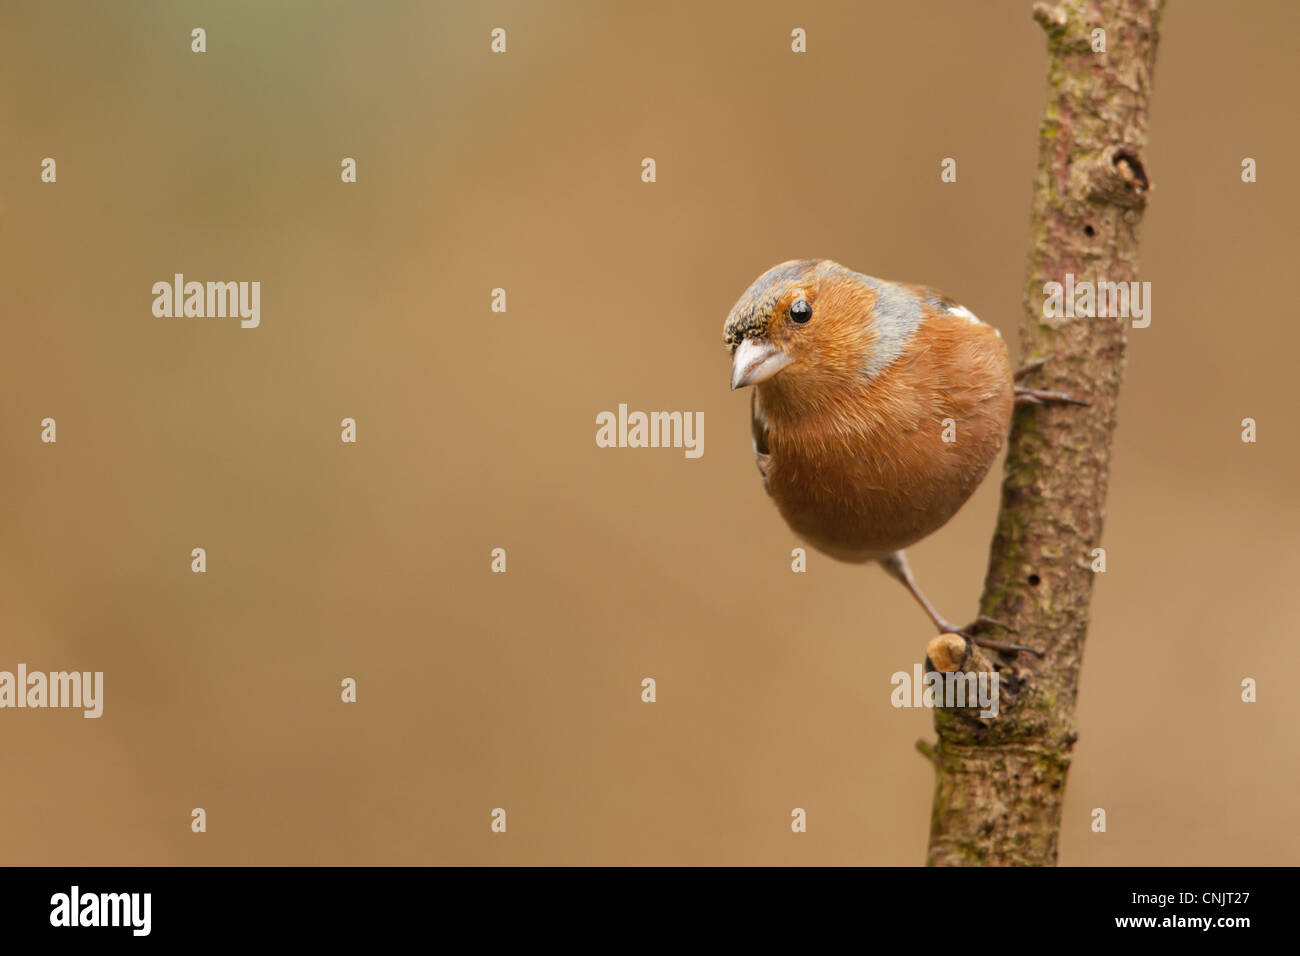 Chaffinch (Fringilla coelebs) adult male, perched on branch, Norfolk, England, february - Stock Image